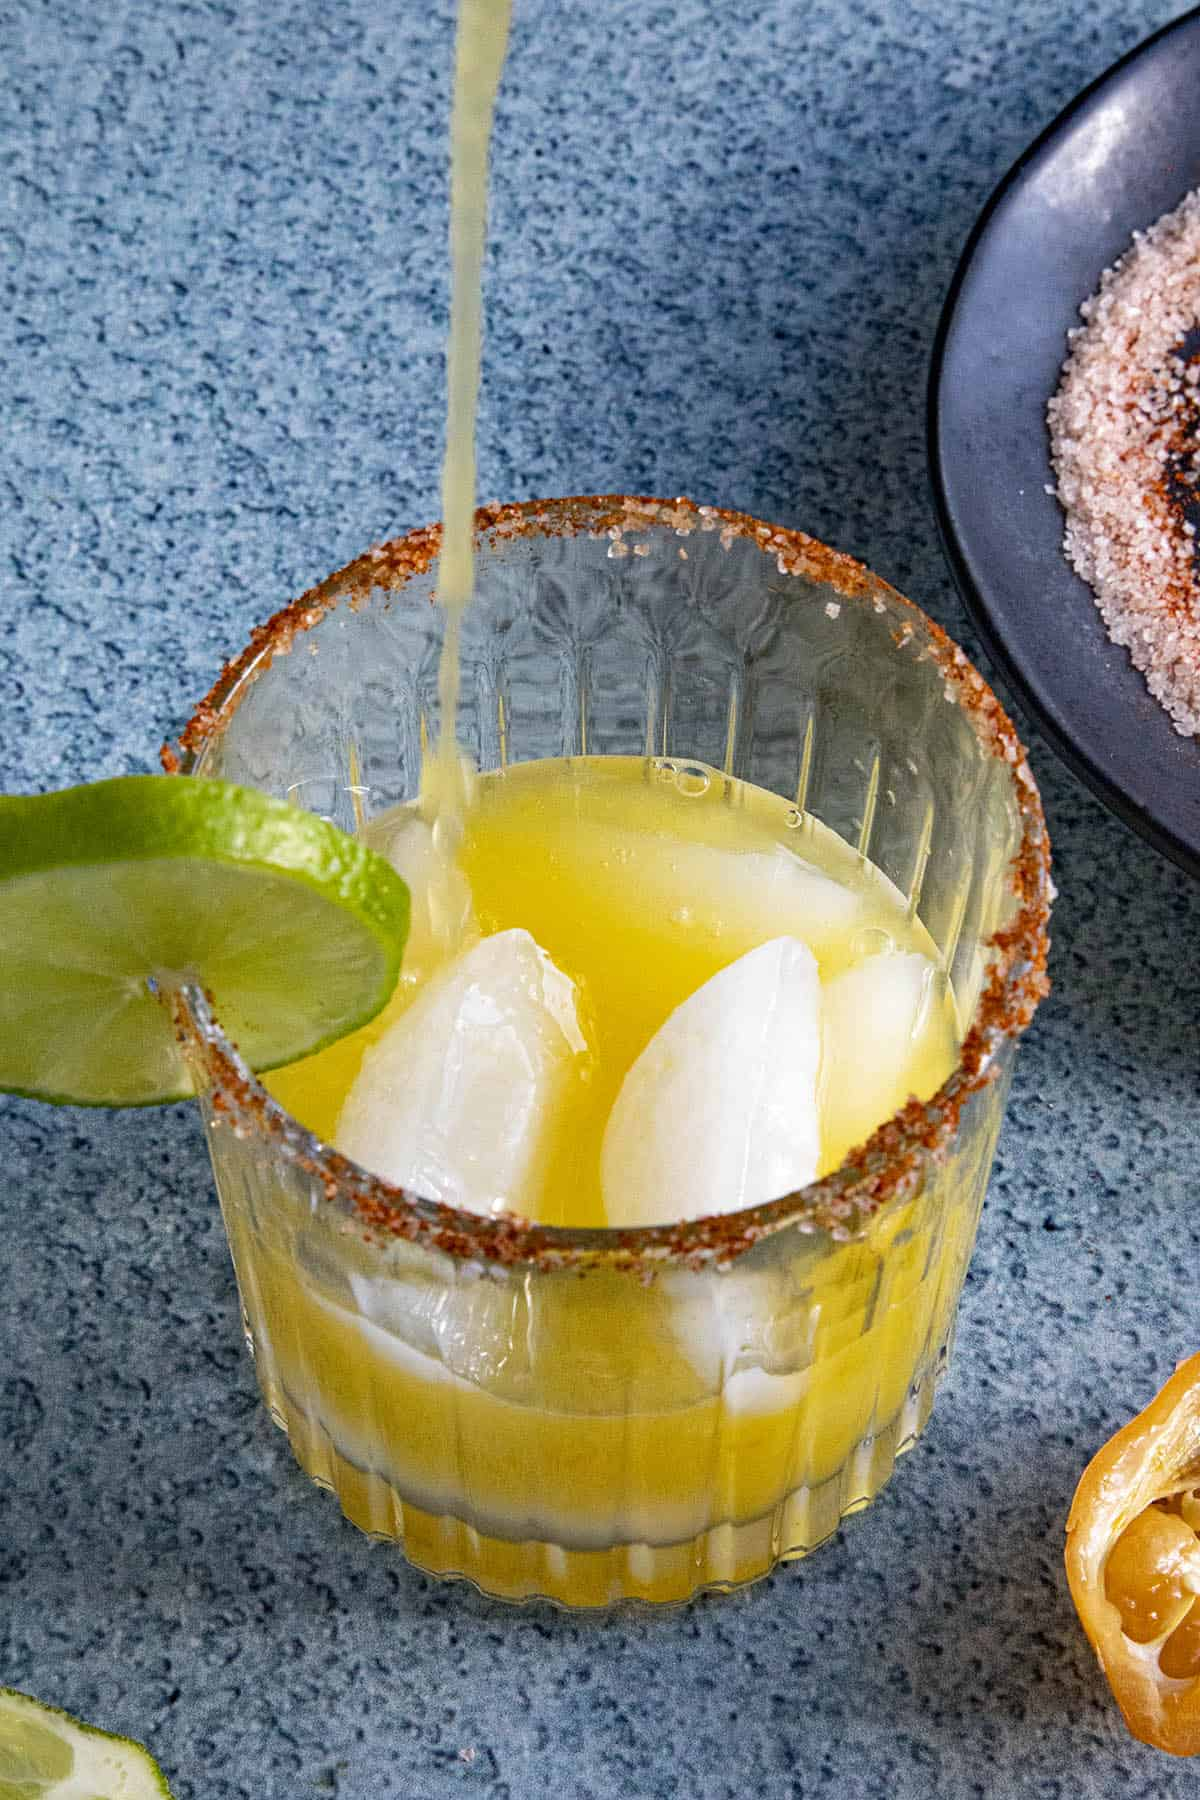 Pouring some Spicy Mango Margarita into a glass with ice